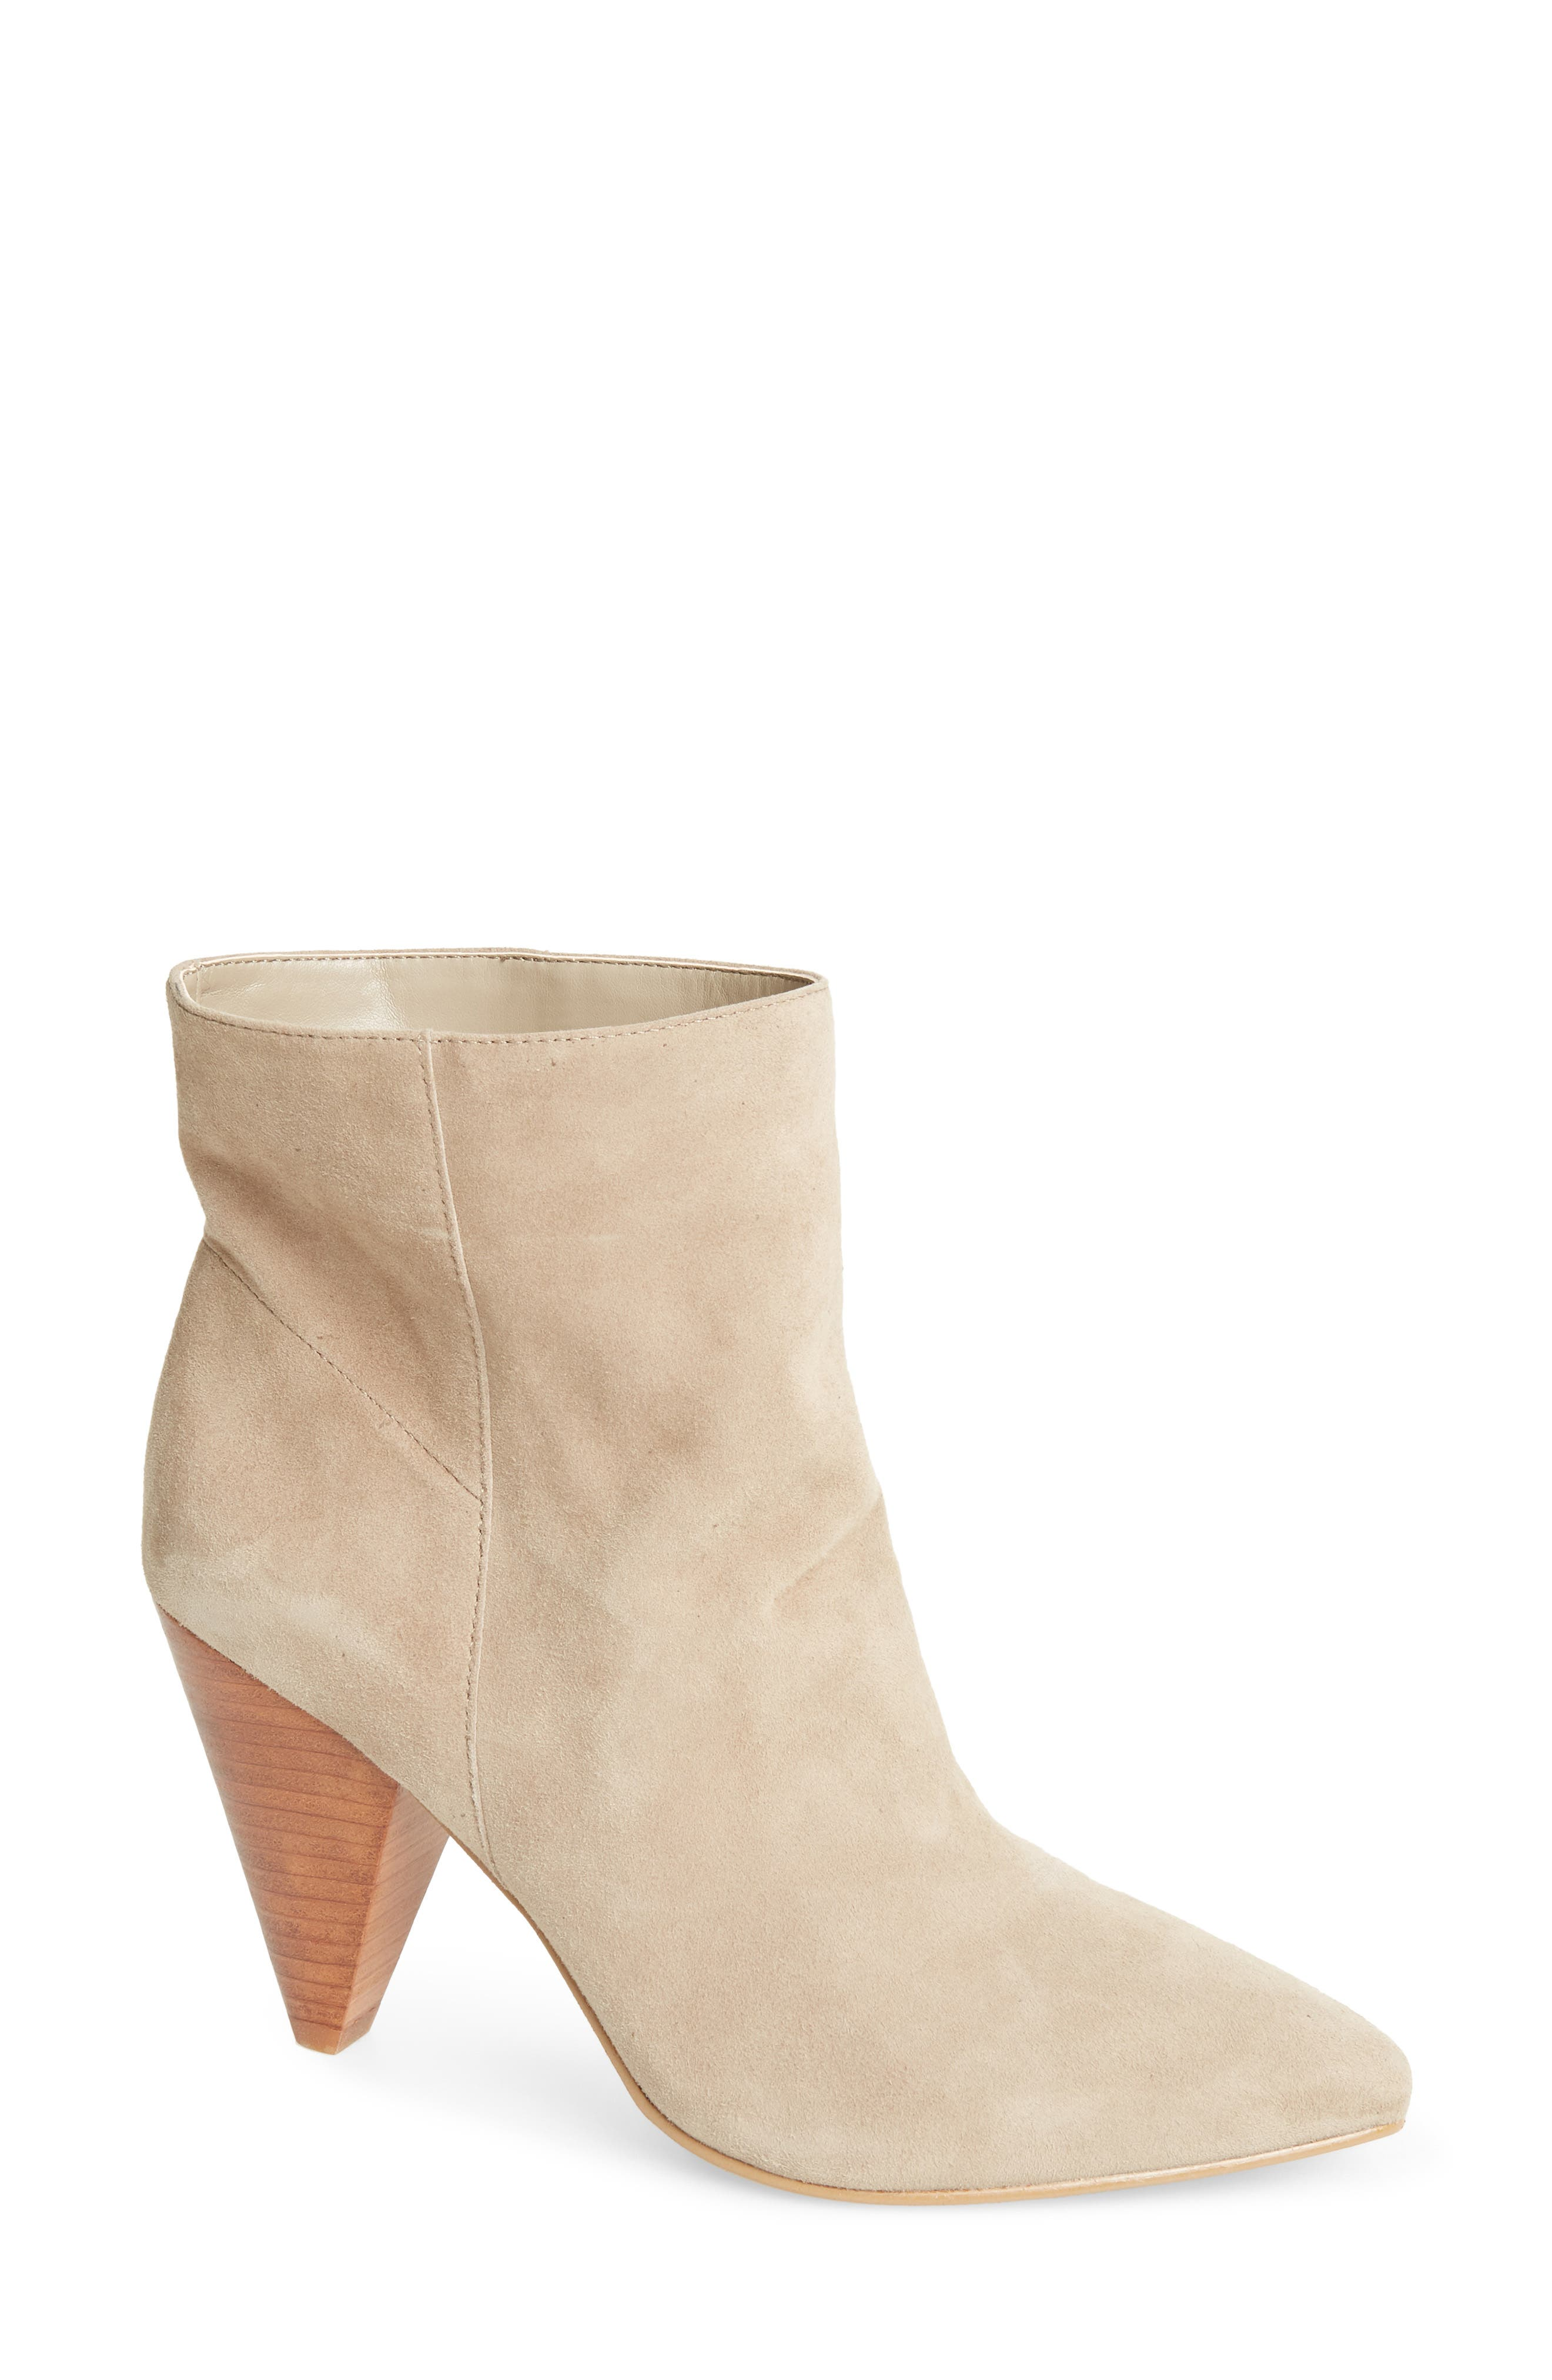 Scope Bootie,                             Main thumbnail 1, color,                             TAUPE SUEDE